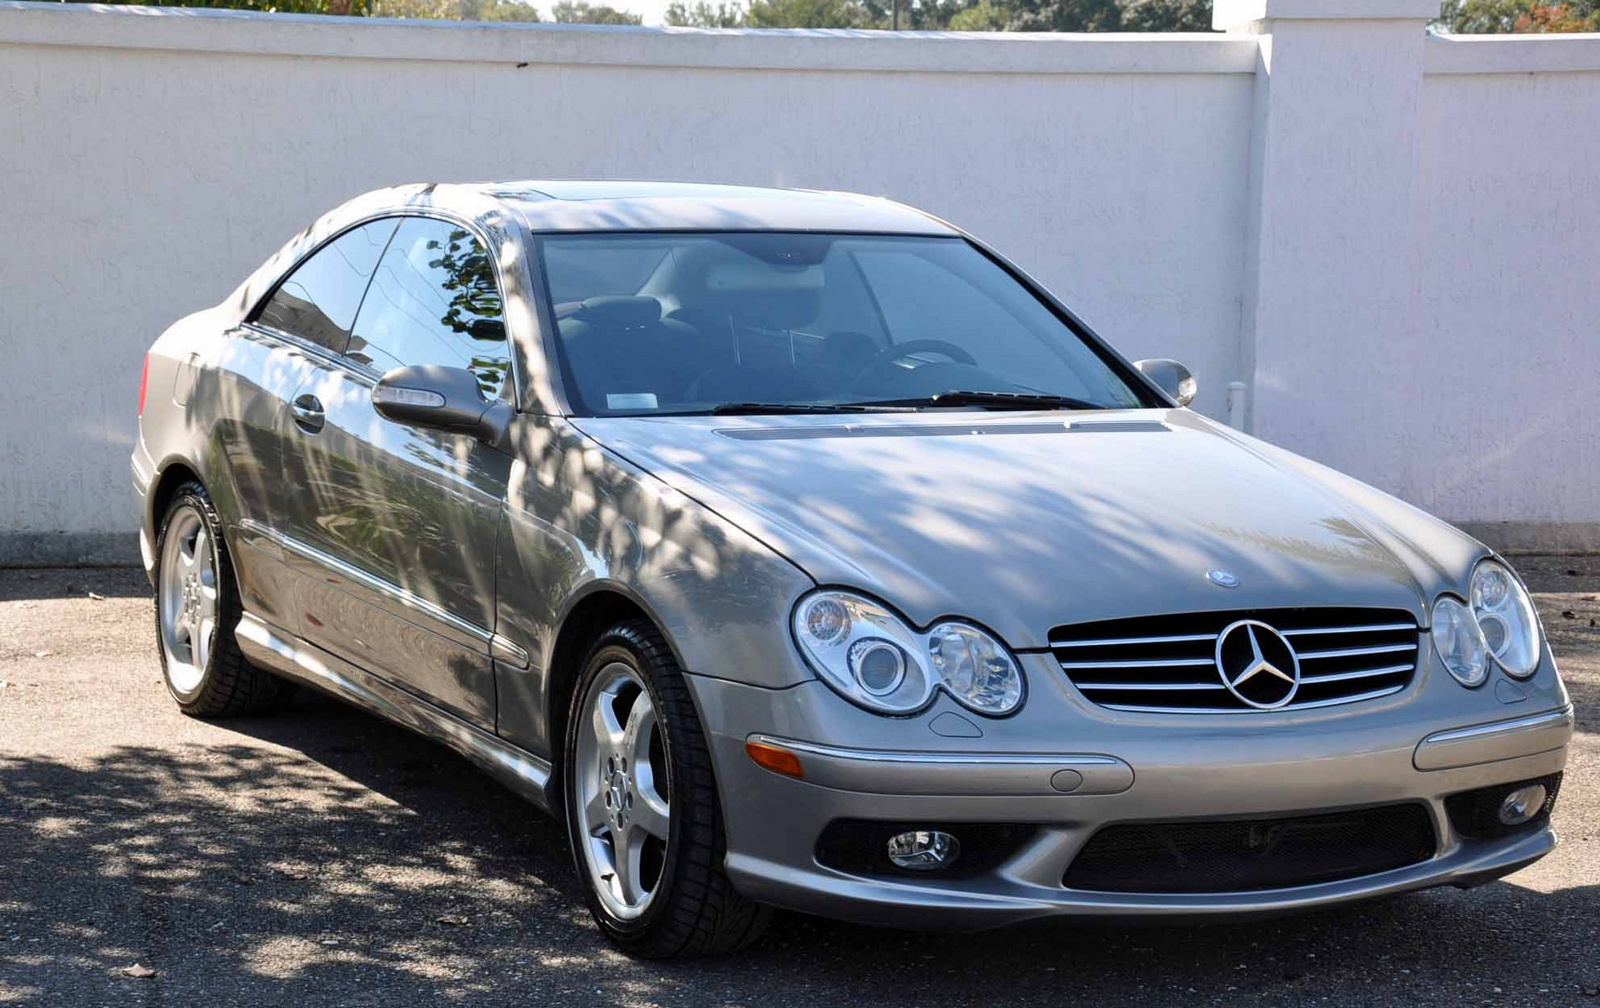 2004 mercedes benz clk class pictures cargurus for Mercedes benz clk 500